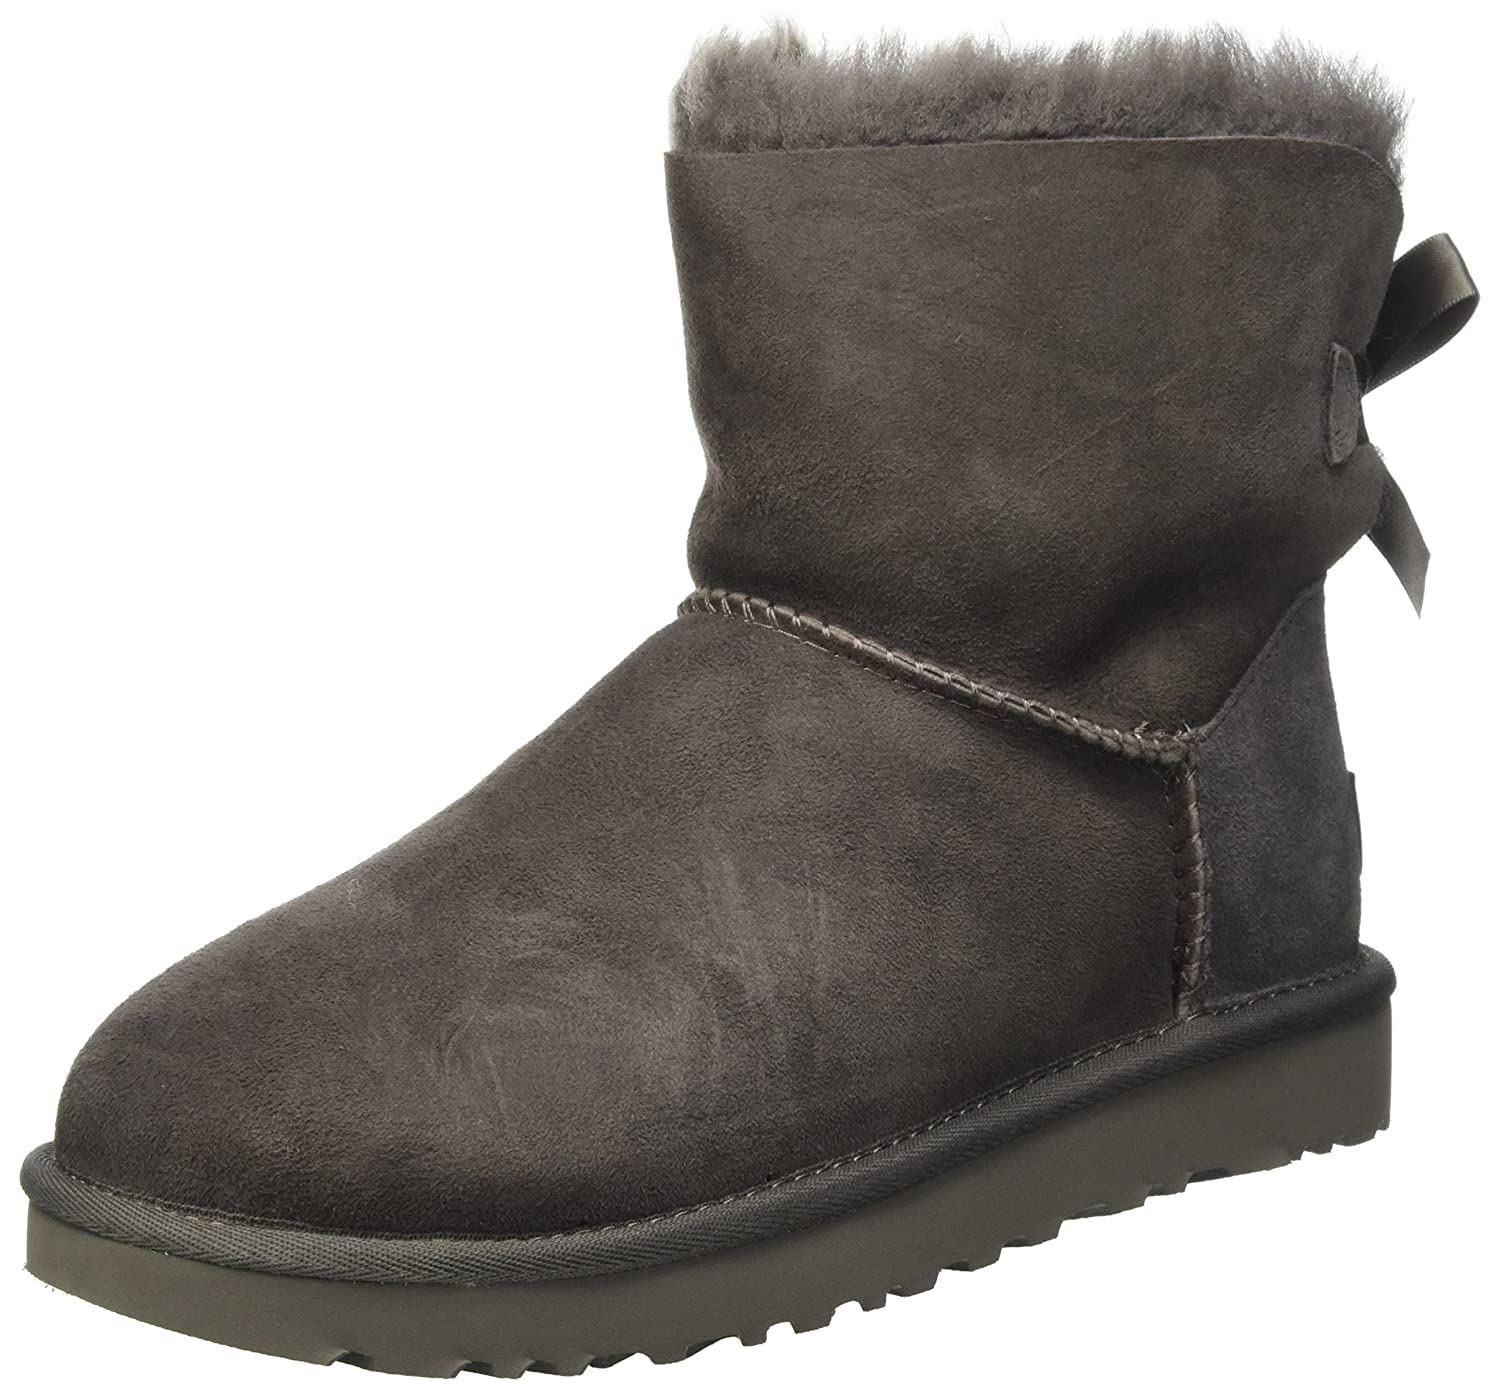 UGG Australia montantes baskets Mini Bailey Bow, Bailey baskets montantes femme Gris (Grigio) 03290f8 - shopssong.space